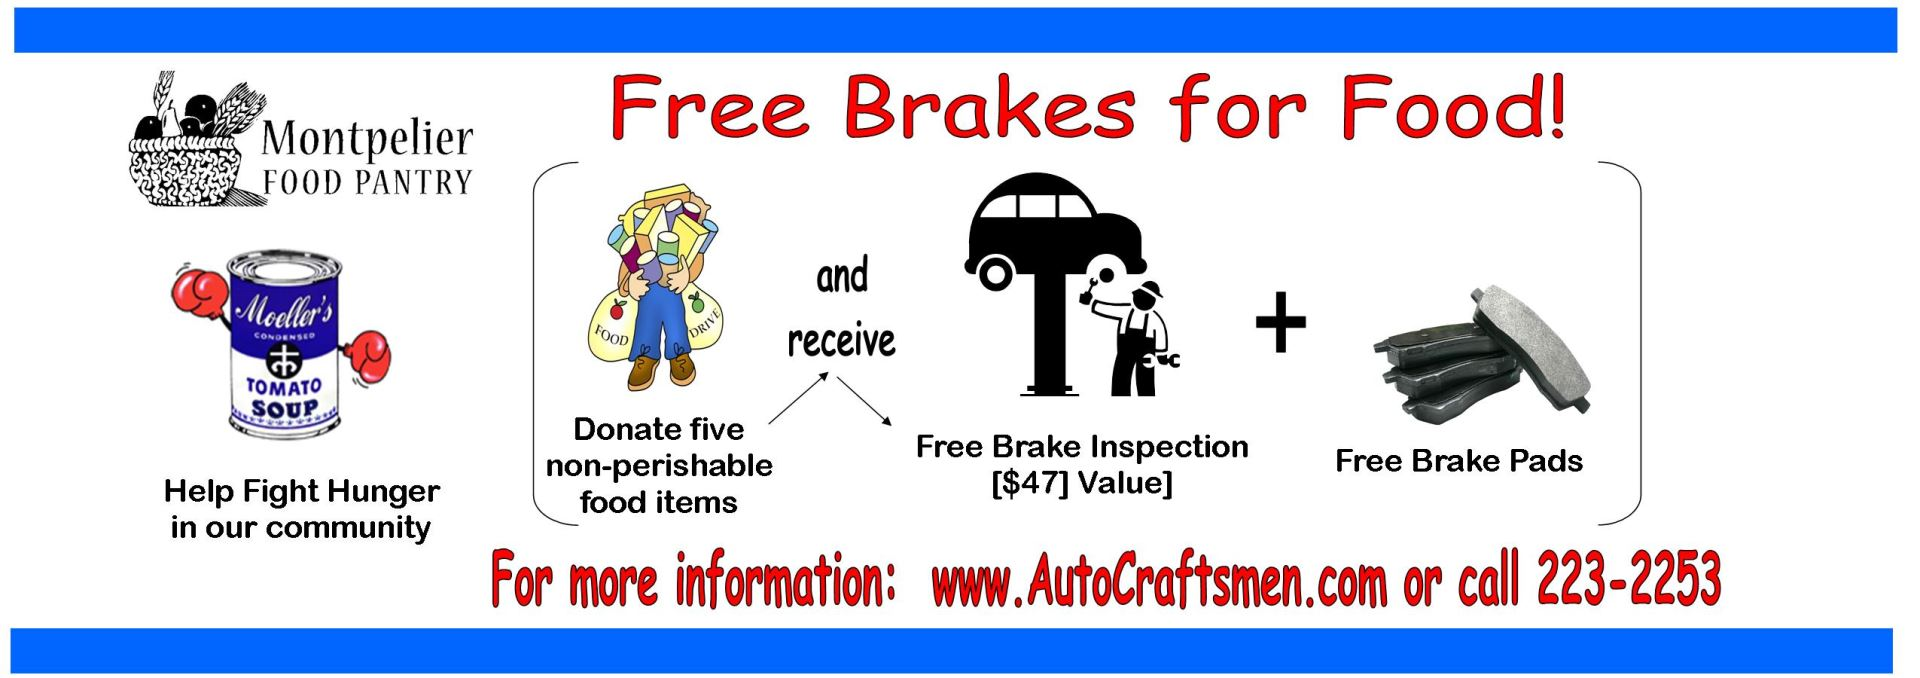 Free Brakes For Food to Support the Montpelier Food Pantry!